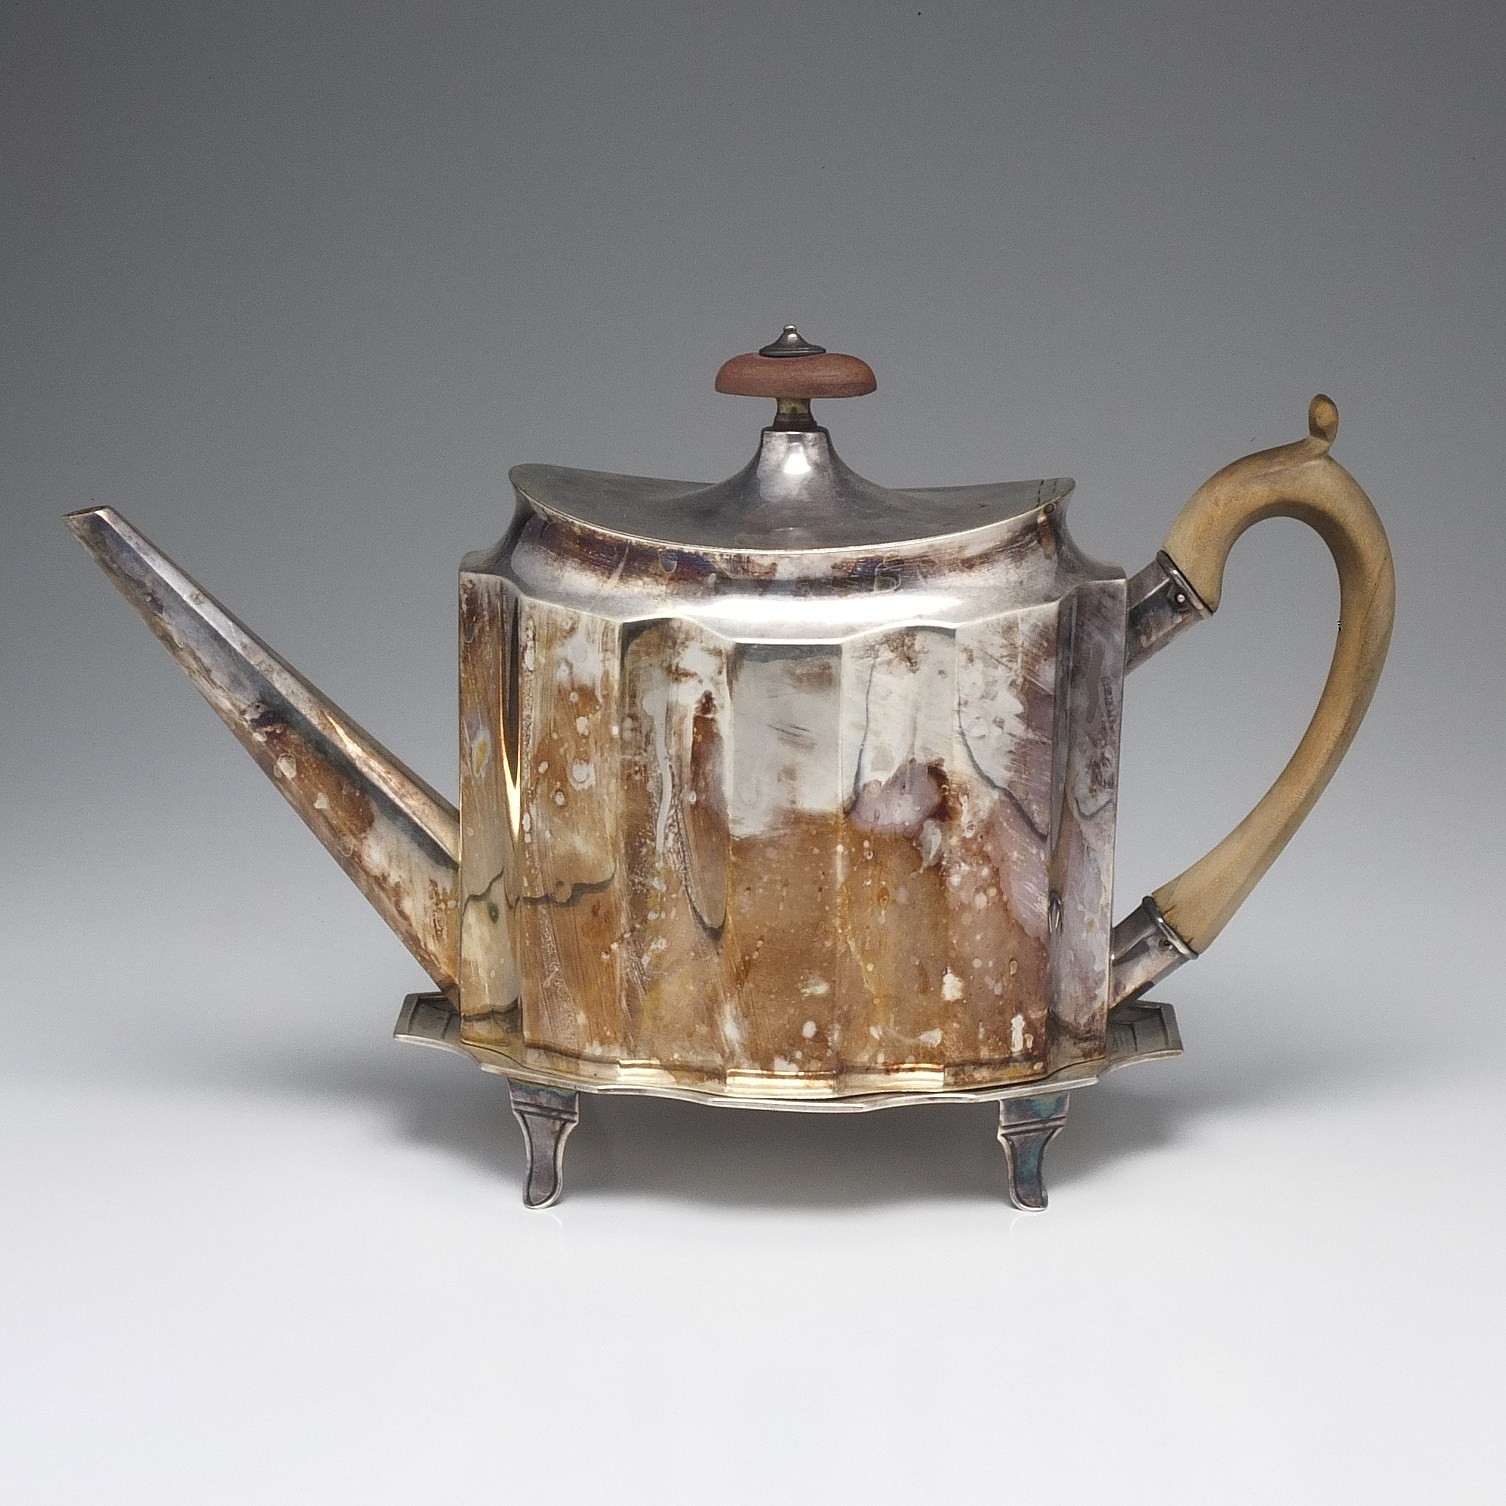 'George III Sterling Silver Teapot and Trivet Thomas Hobbs London 1793'